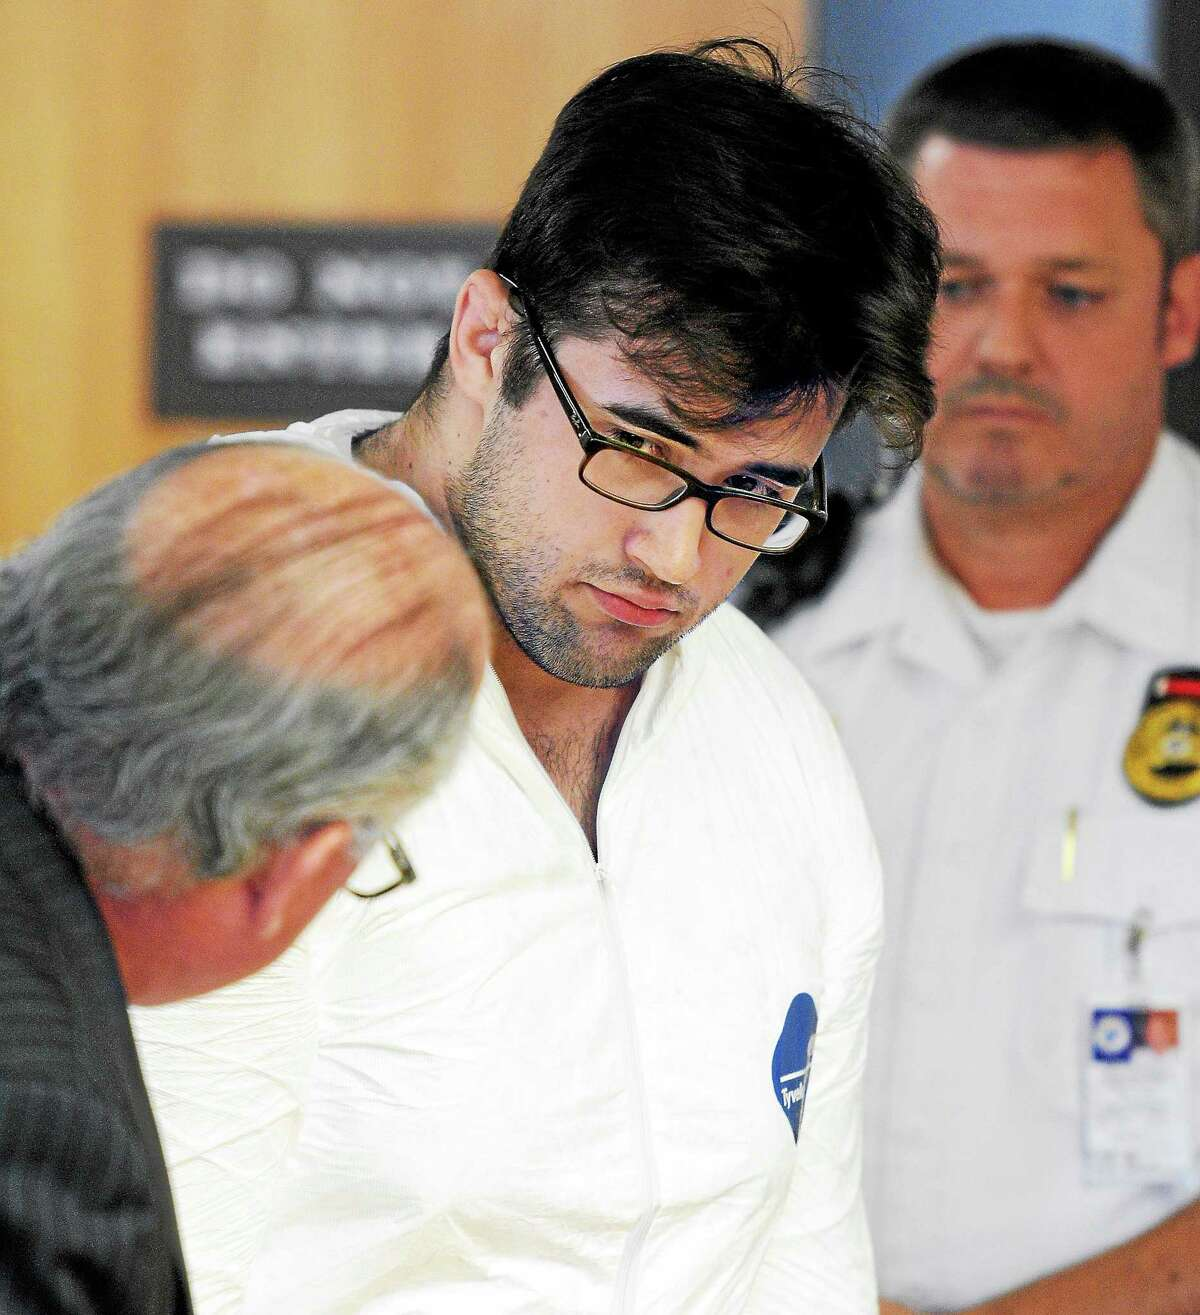 Timothy Granata, center, is arraigned in the killing of his mother, Claudia Granata, in Derby Superior Court July 25.